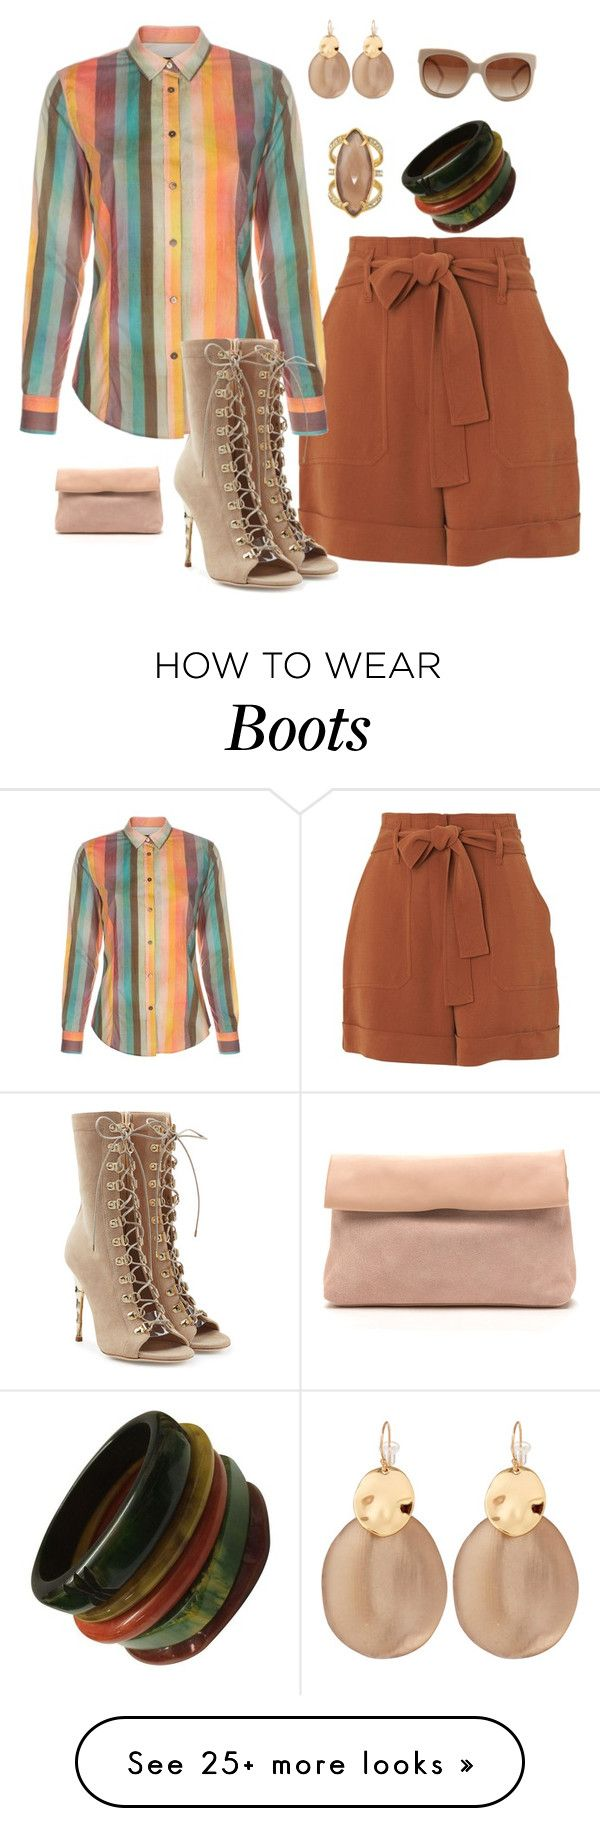 """Earth tones"" by kerashawn on Polyvore featuring Whistles, Paul Smith, Balmain, Henri Bendel, Alexis Bittar and STELLA McCARTNEY"